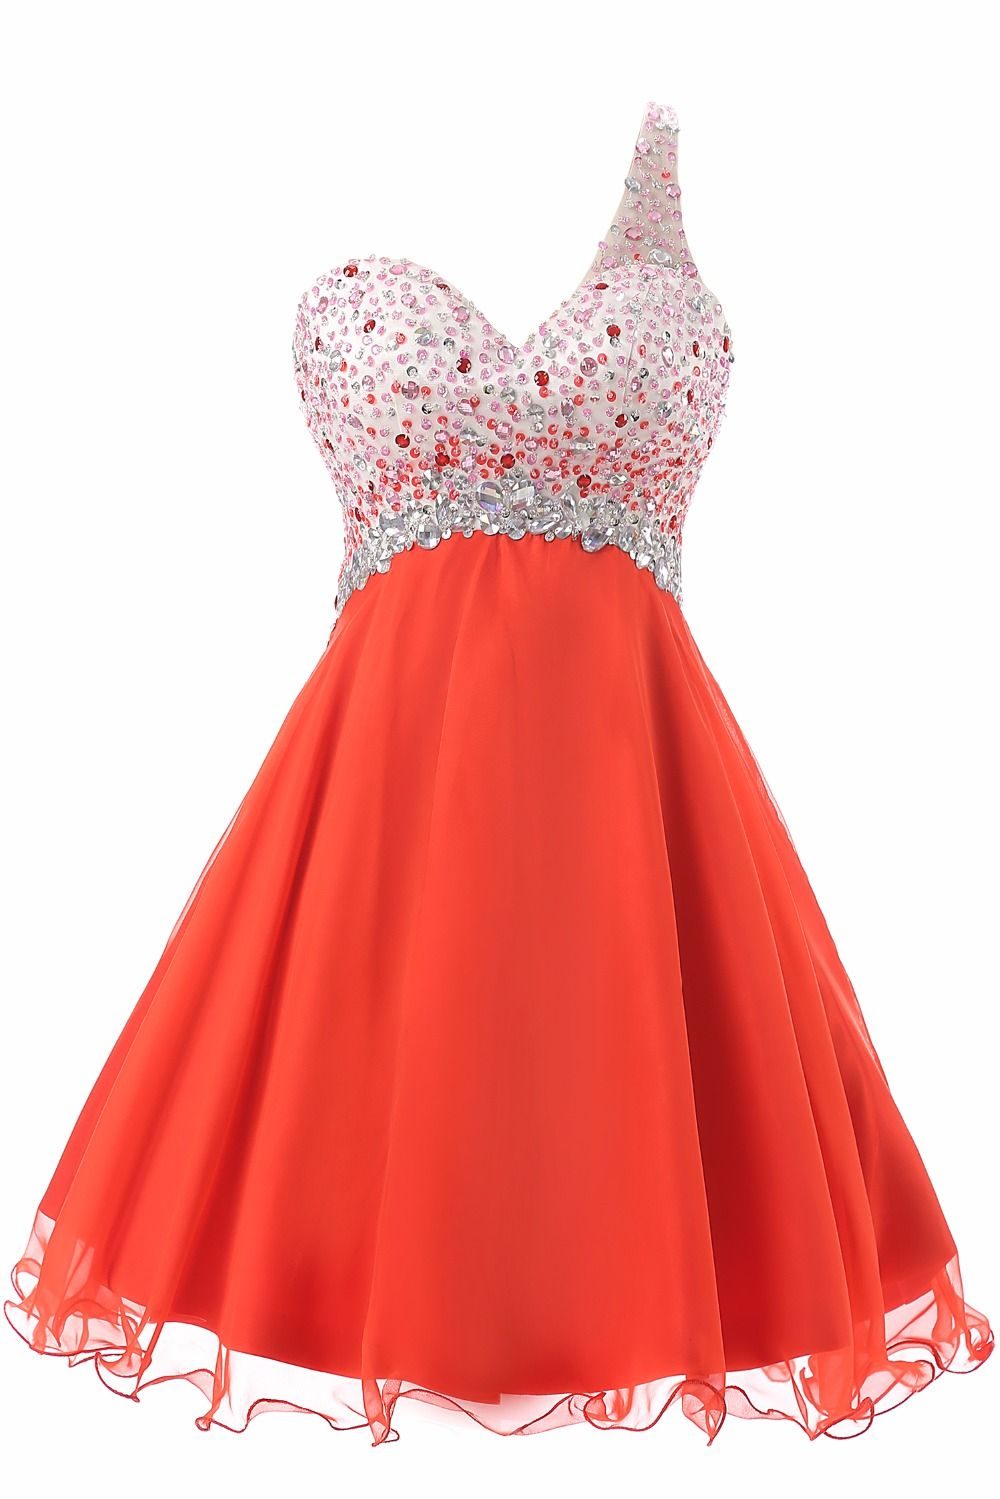 Sexy dresses with crystal women evening dresse short ball gown